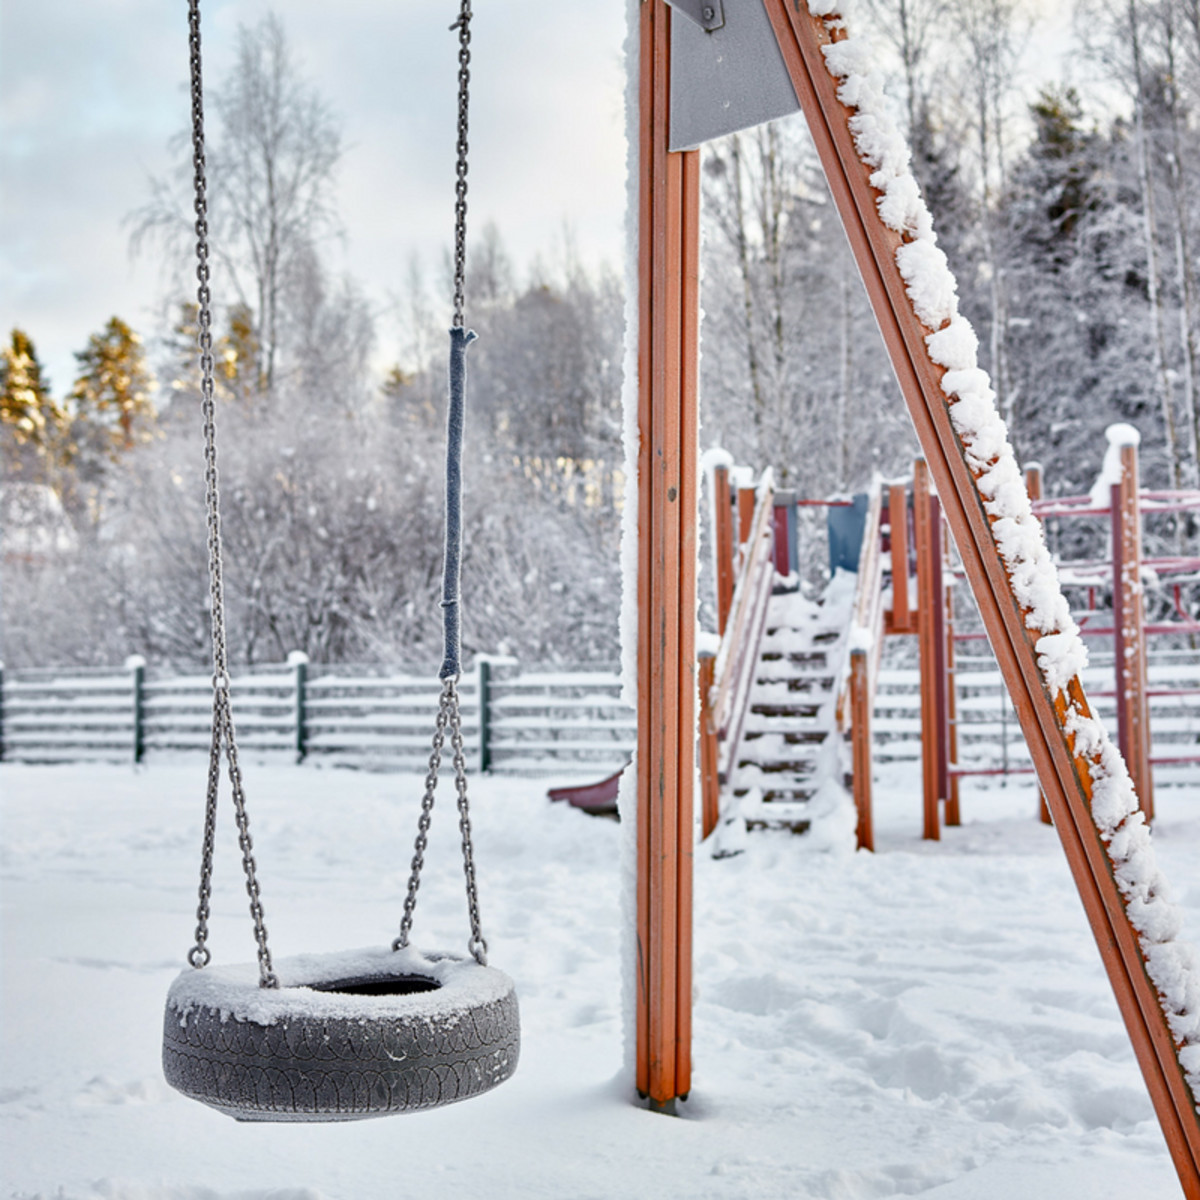 snowy playgound tire swing